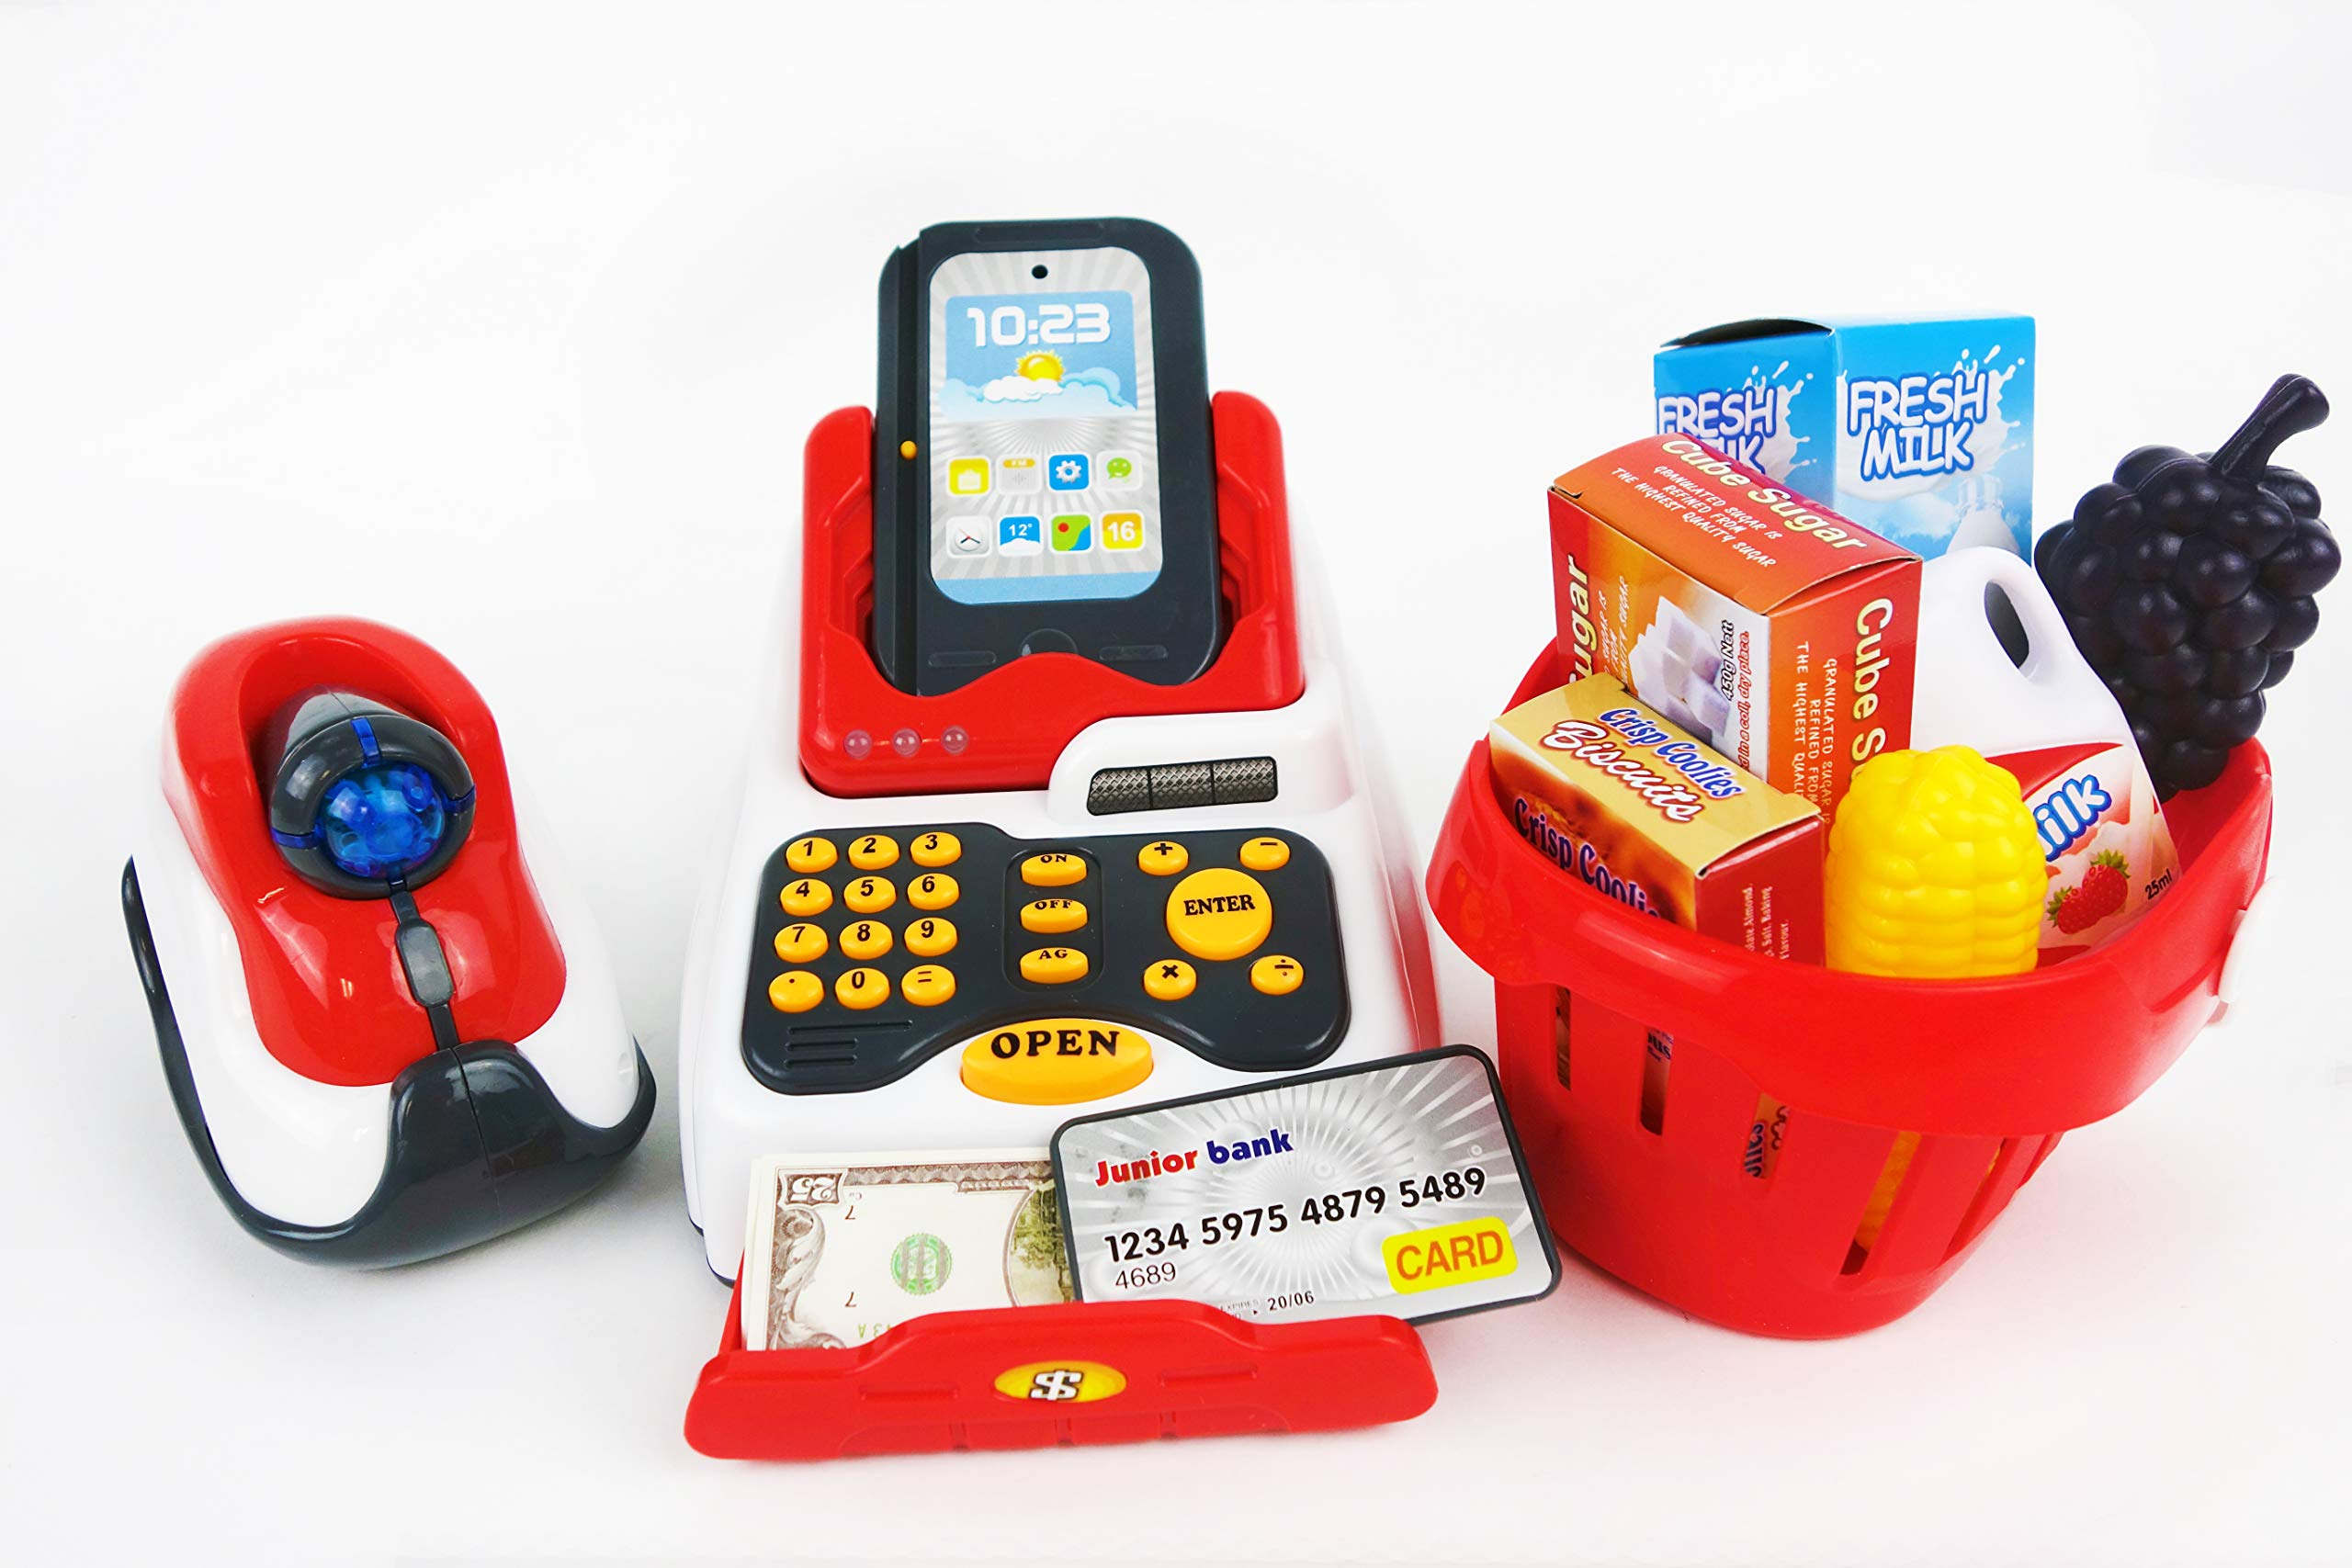 NBD Corp Toy Cash Register with Lights, Sound, Play Money and More, 18 Pieces by NBD Corp